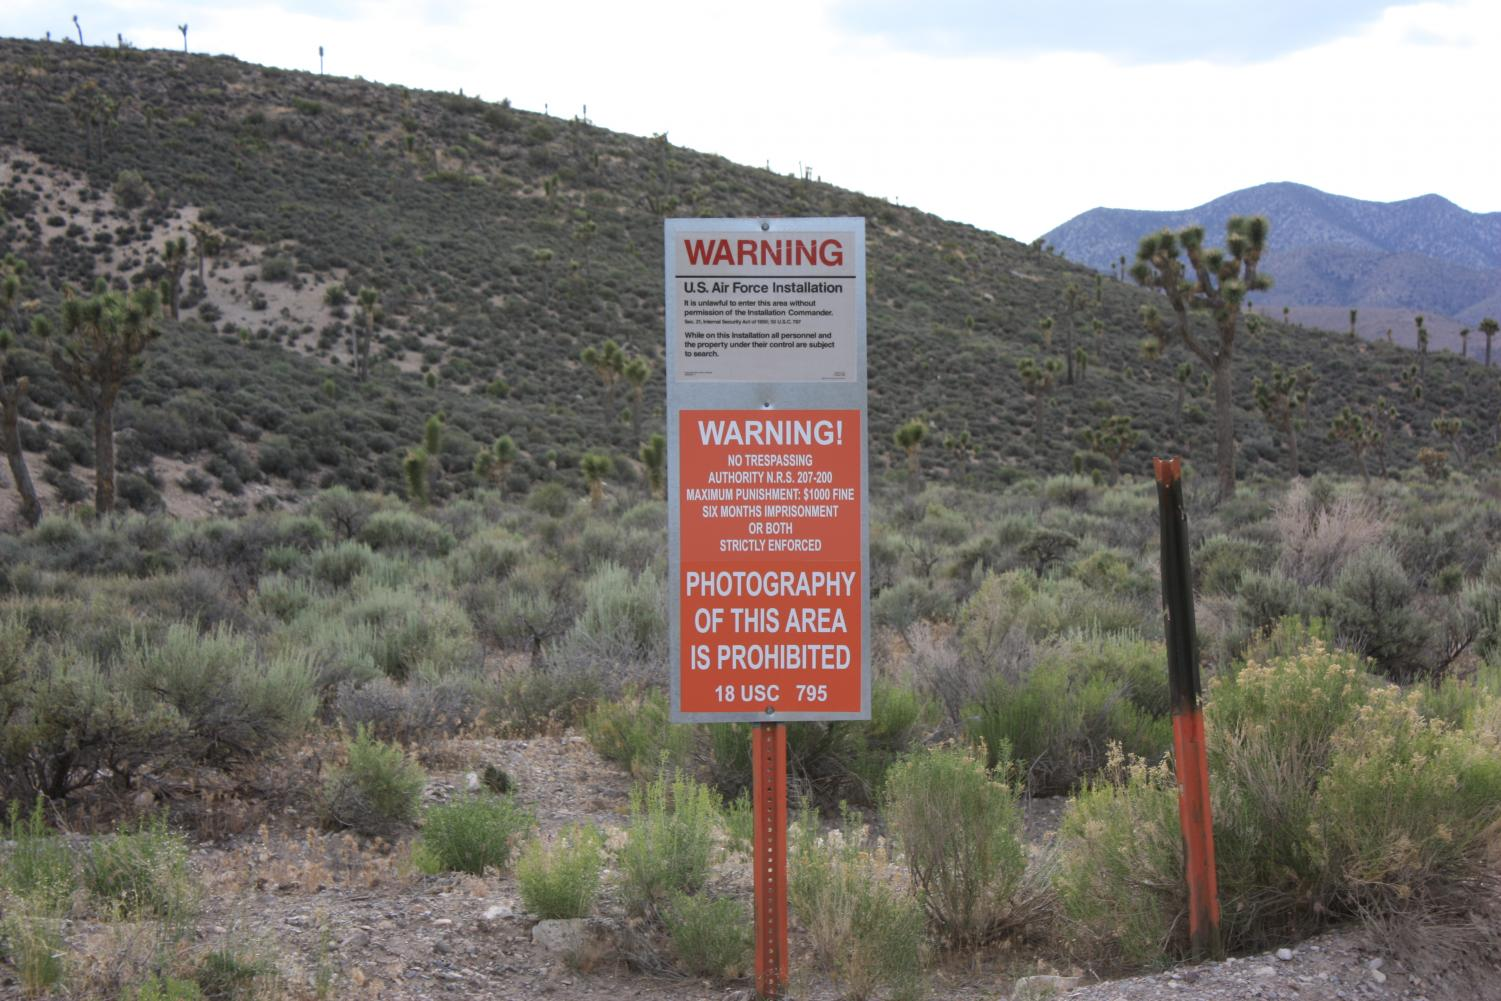 Urging trespassers to turn back, this sign is the last warning before people are arrested or shot by snipers before entering Area 51. Area 51 is a top secret military base that has led to many speculations of the government hiding the extraterrestrial.